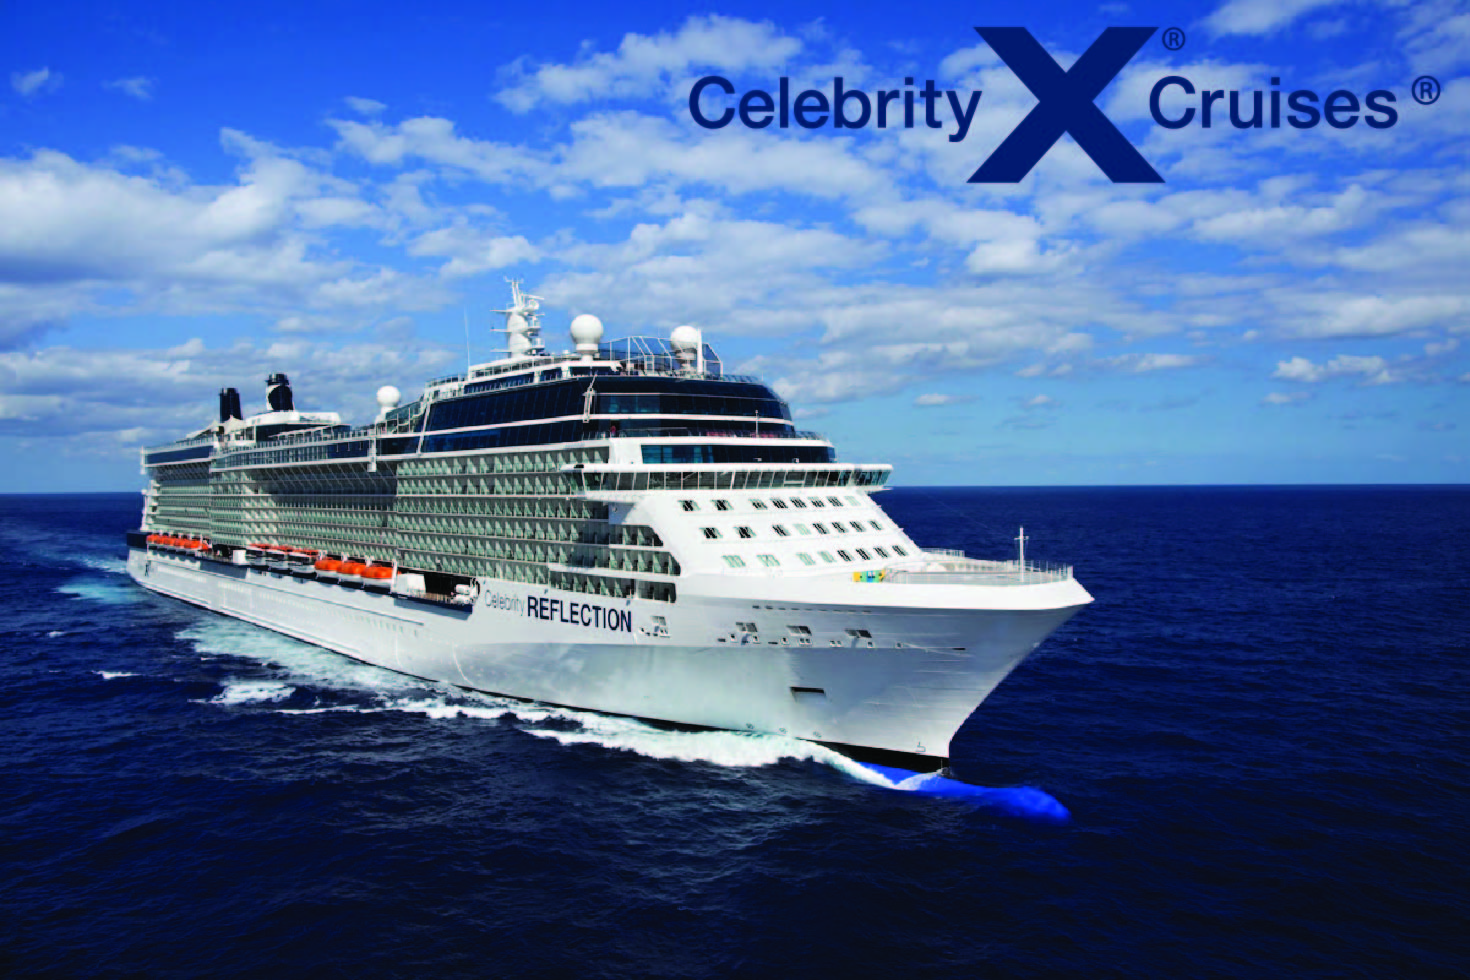 Celebrity Ship with CEL Logo